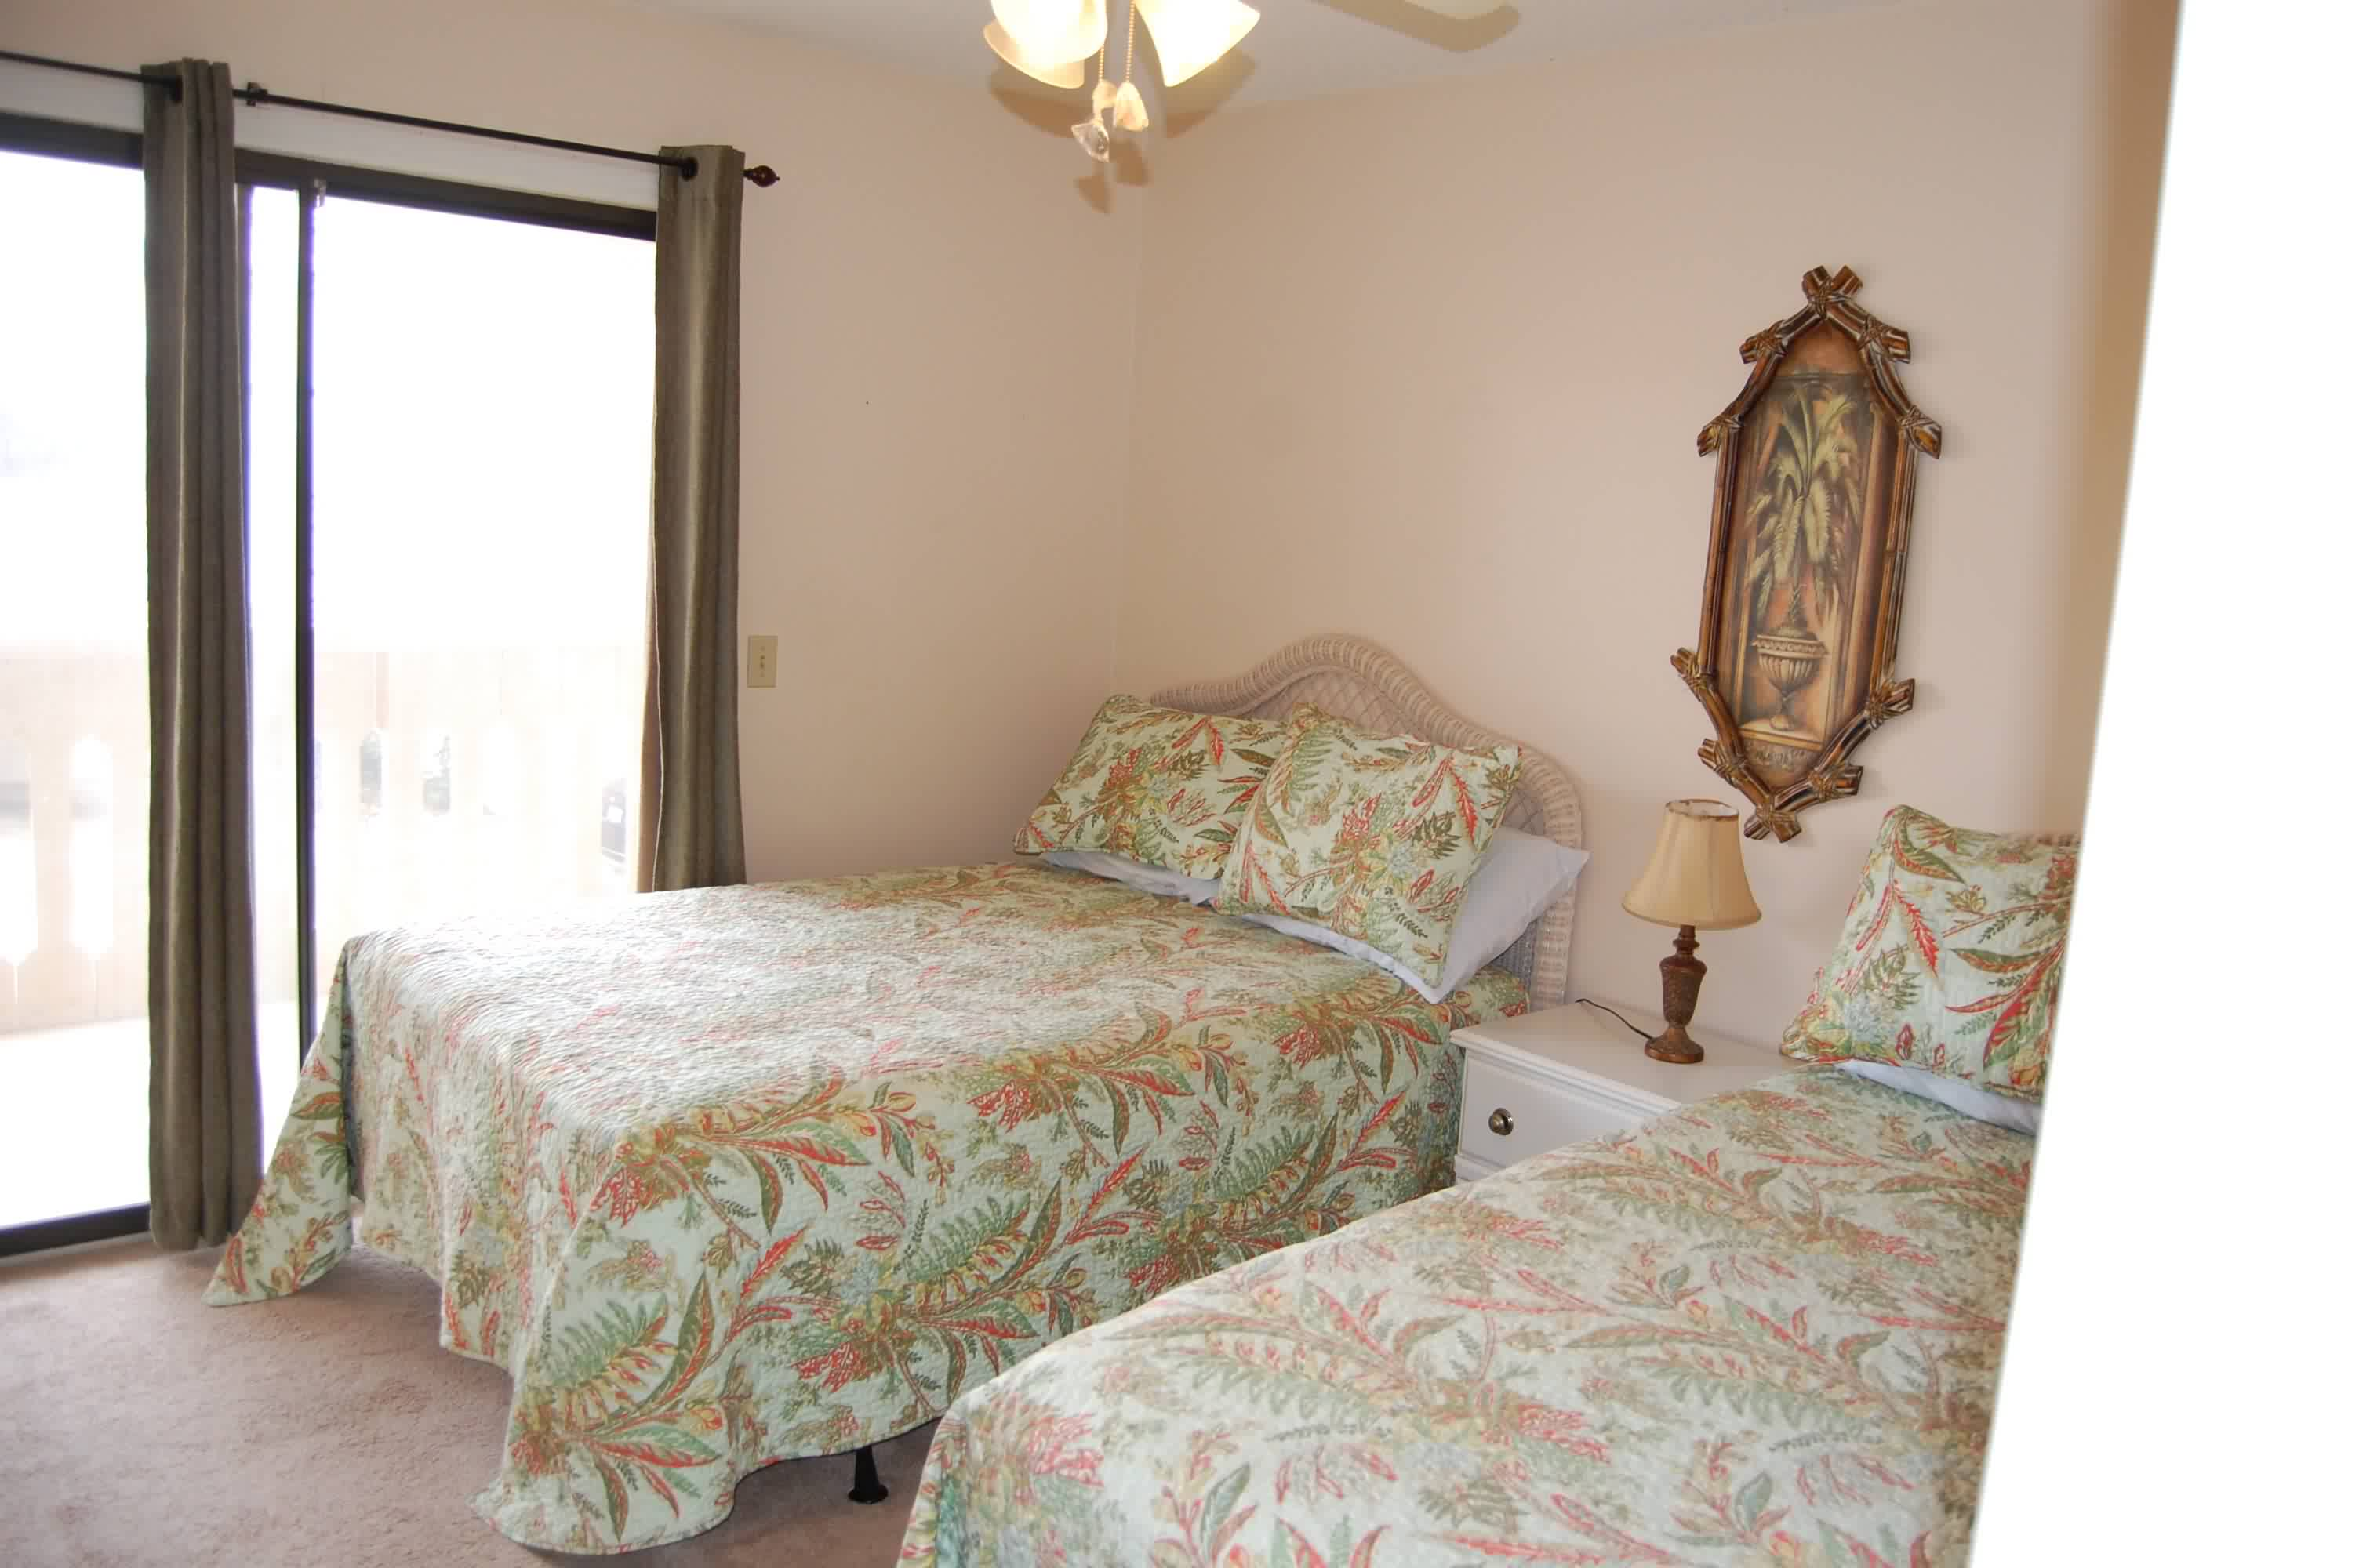 3rd bedroom with 2 full beds and adjoining balcony